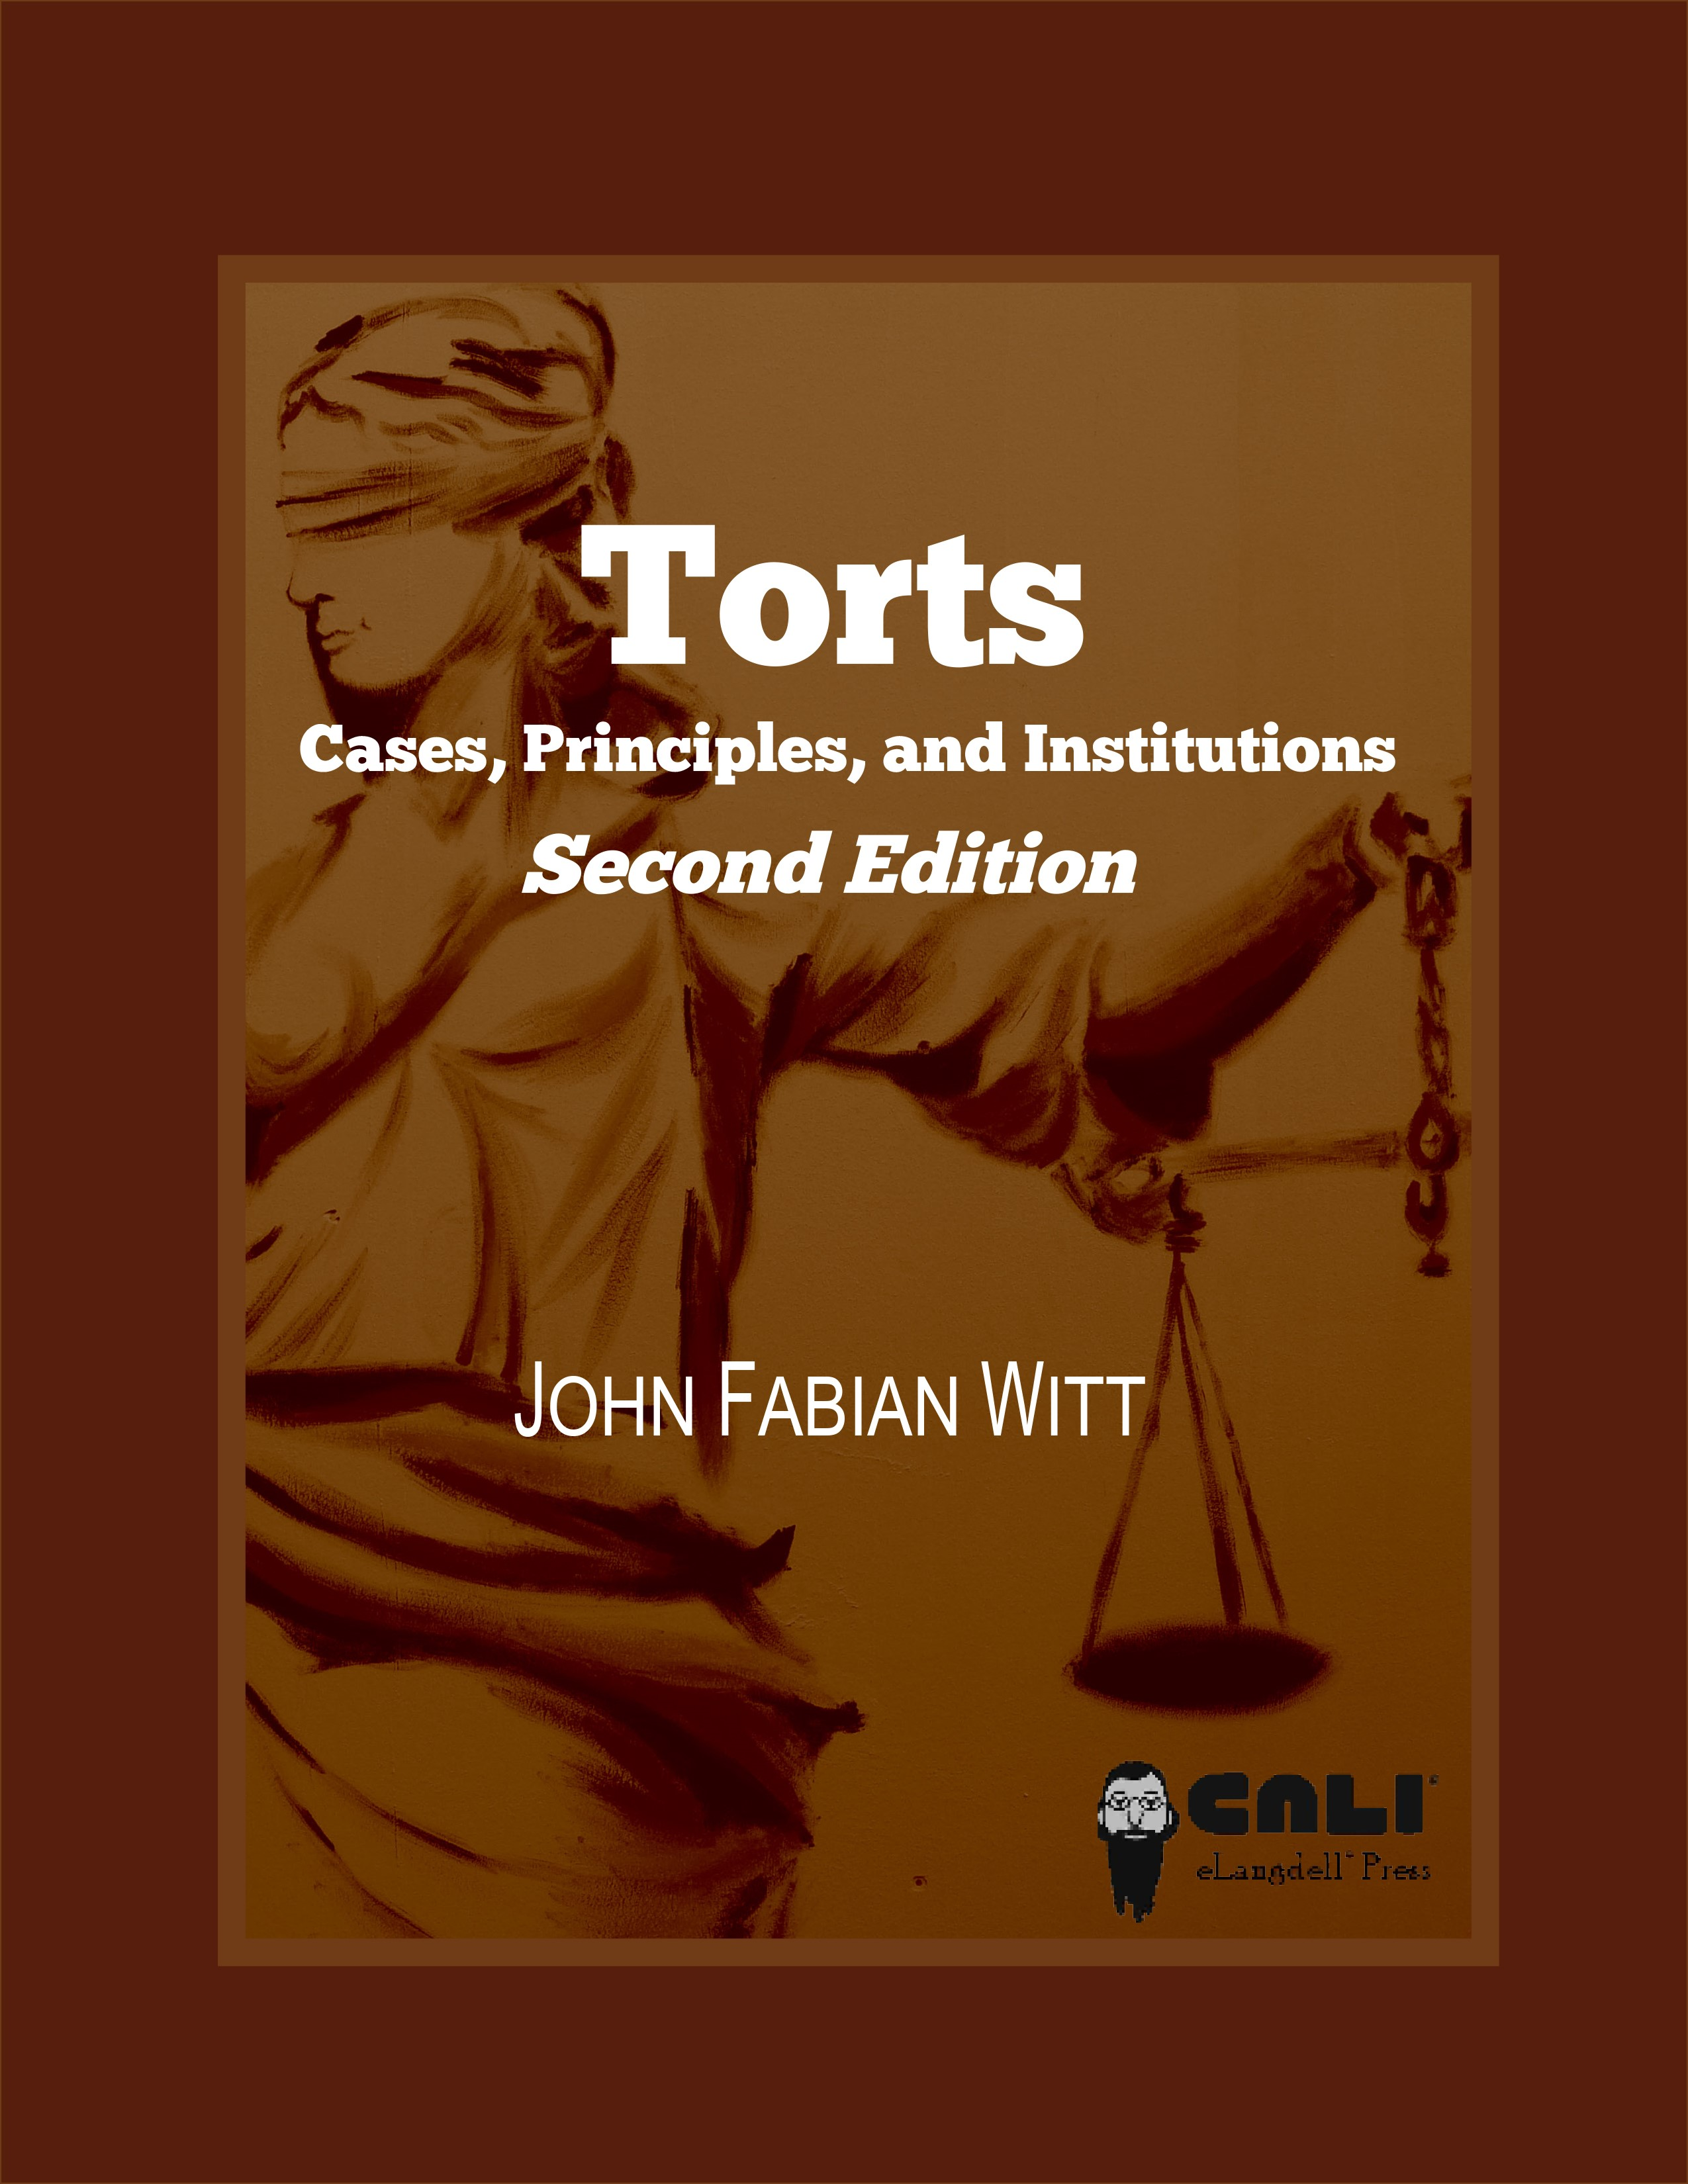 Torts_Cases_Principle_Institutions_2ndEdition_Witt